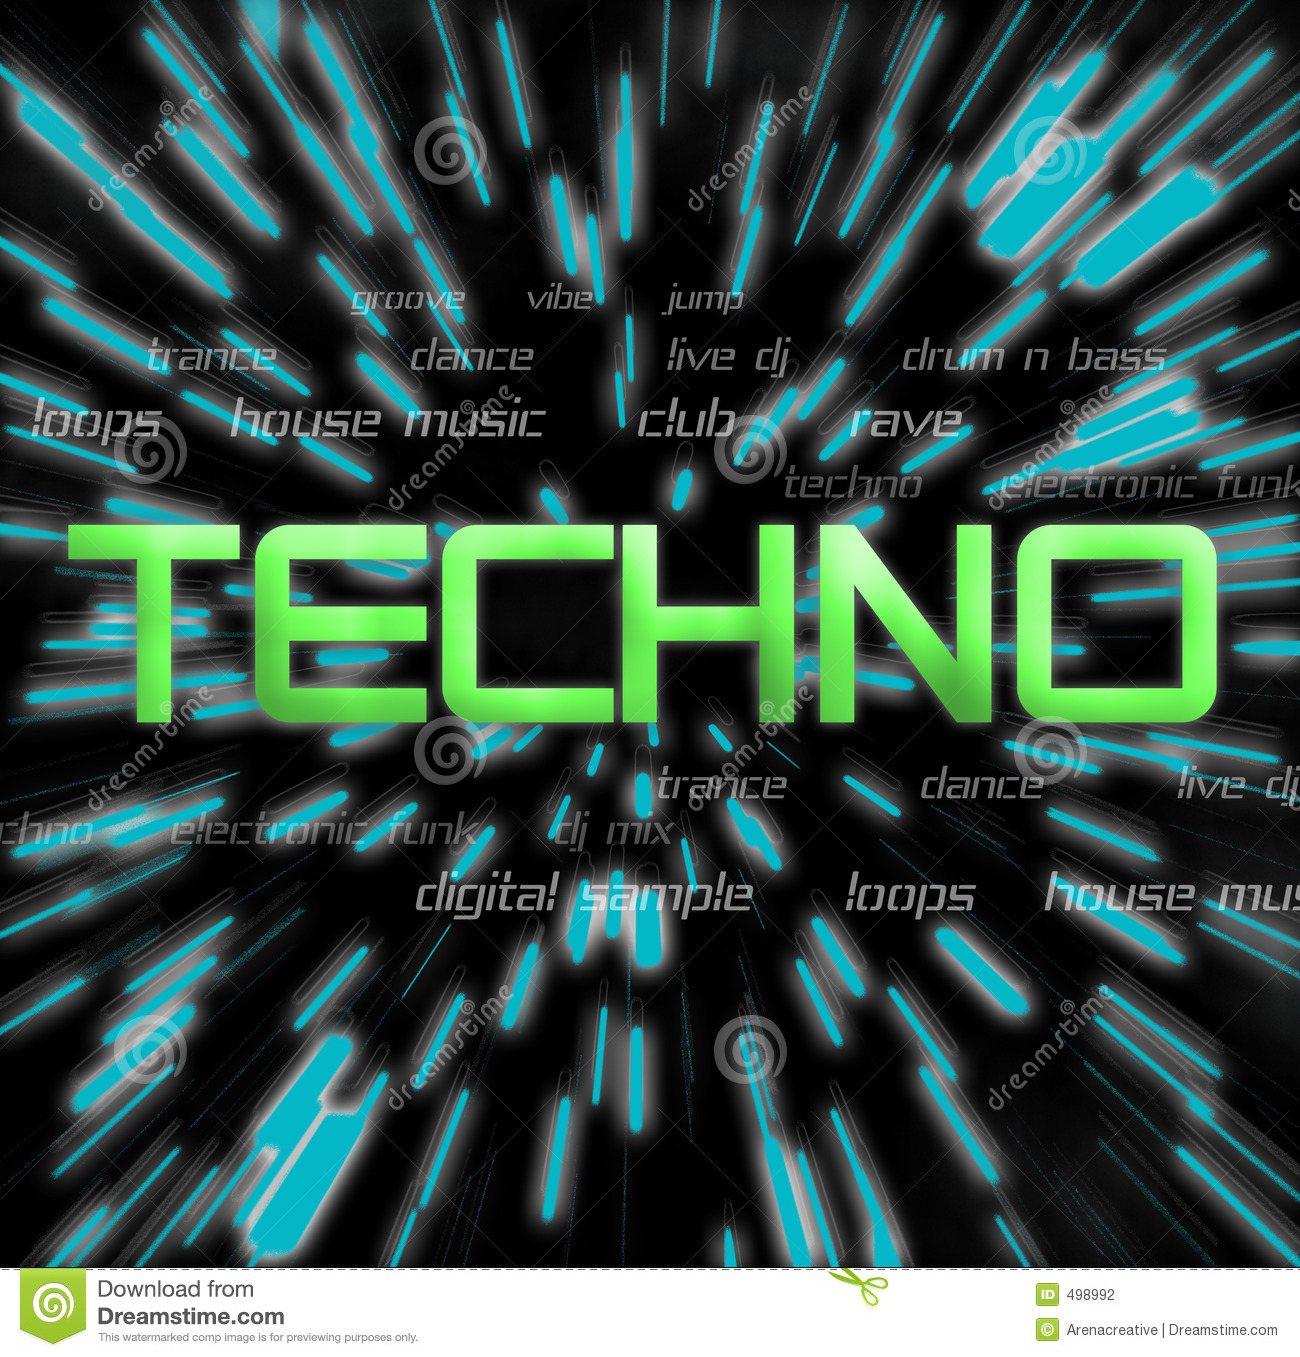 Techno Collage Stock Photography - Image: 498992